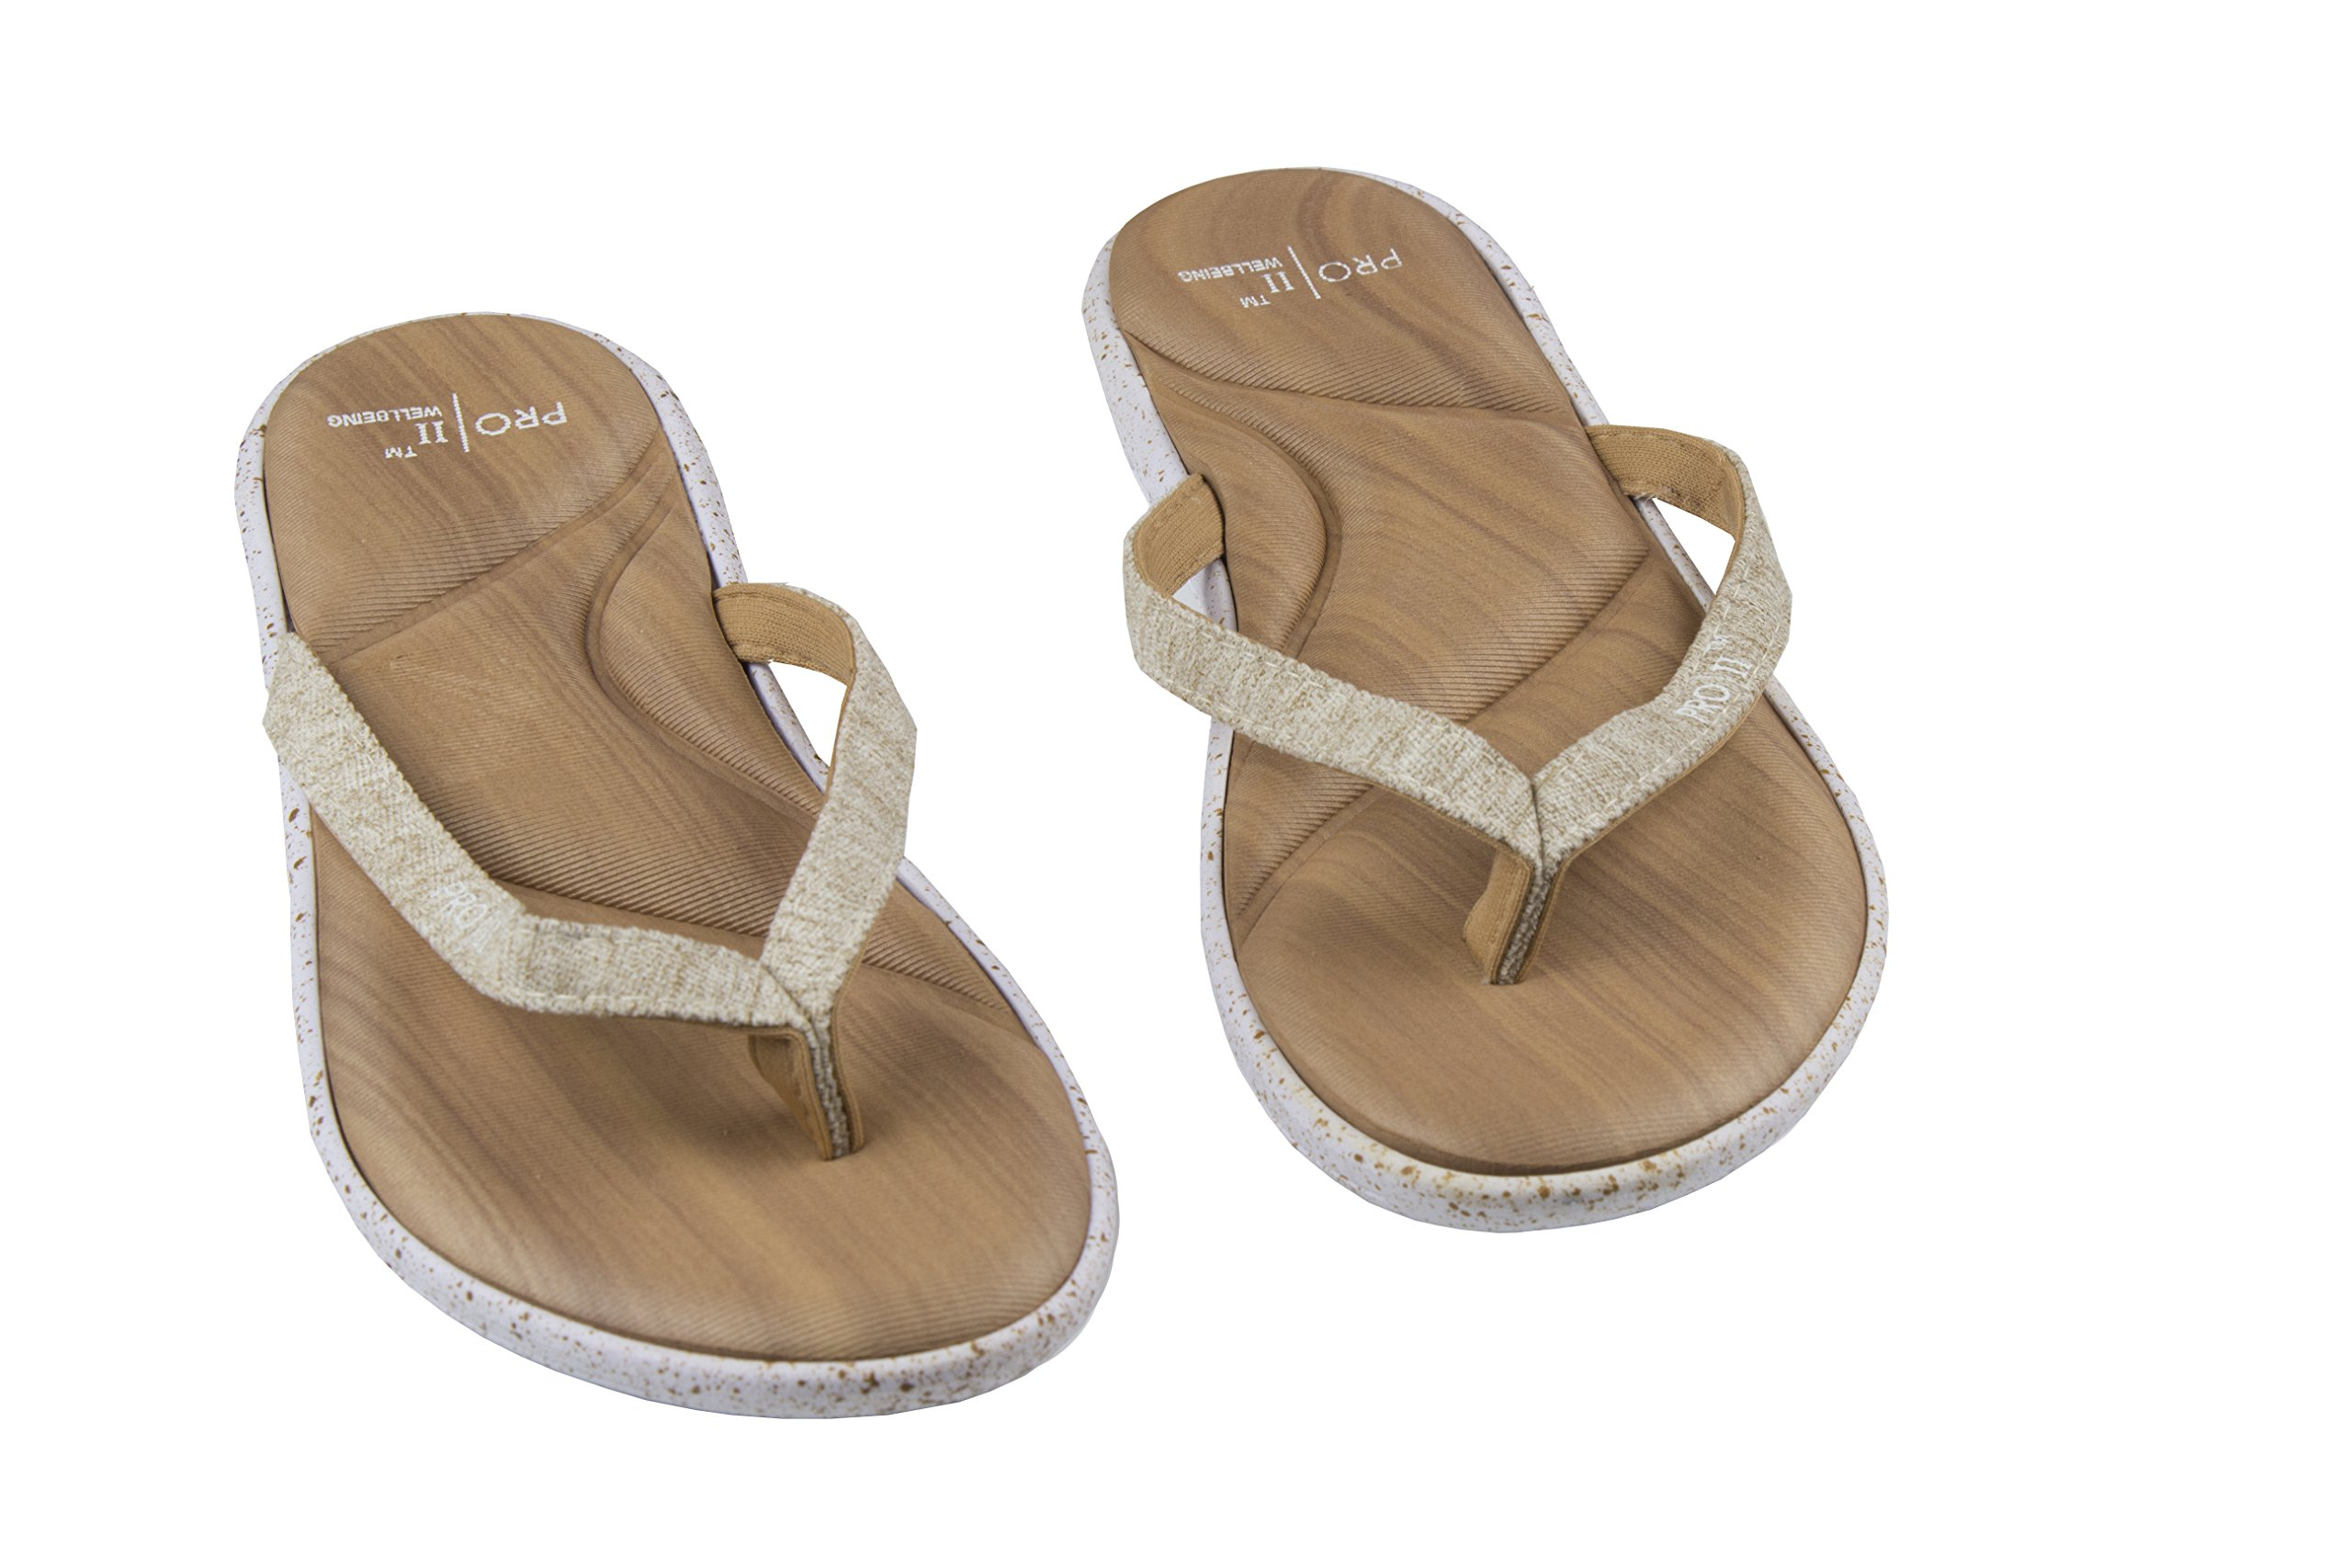 Pro 11 wellbeing Womens Orthotic sandals Tan